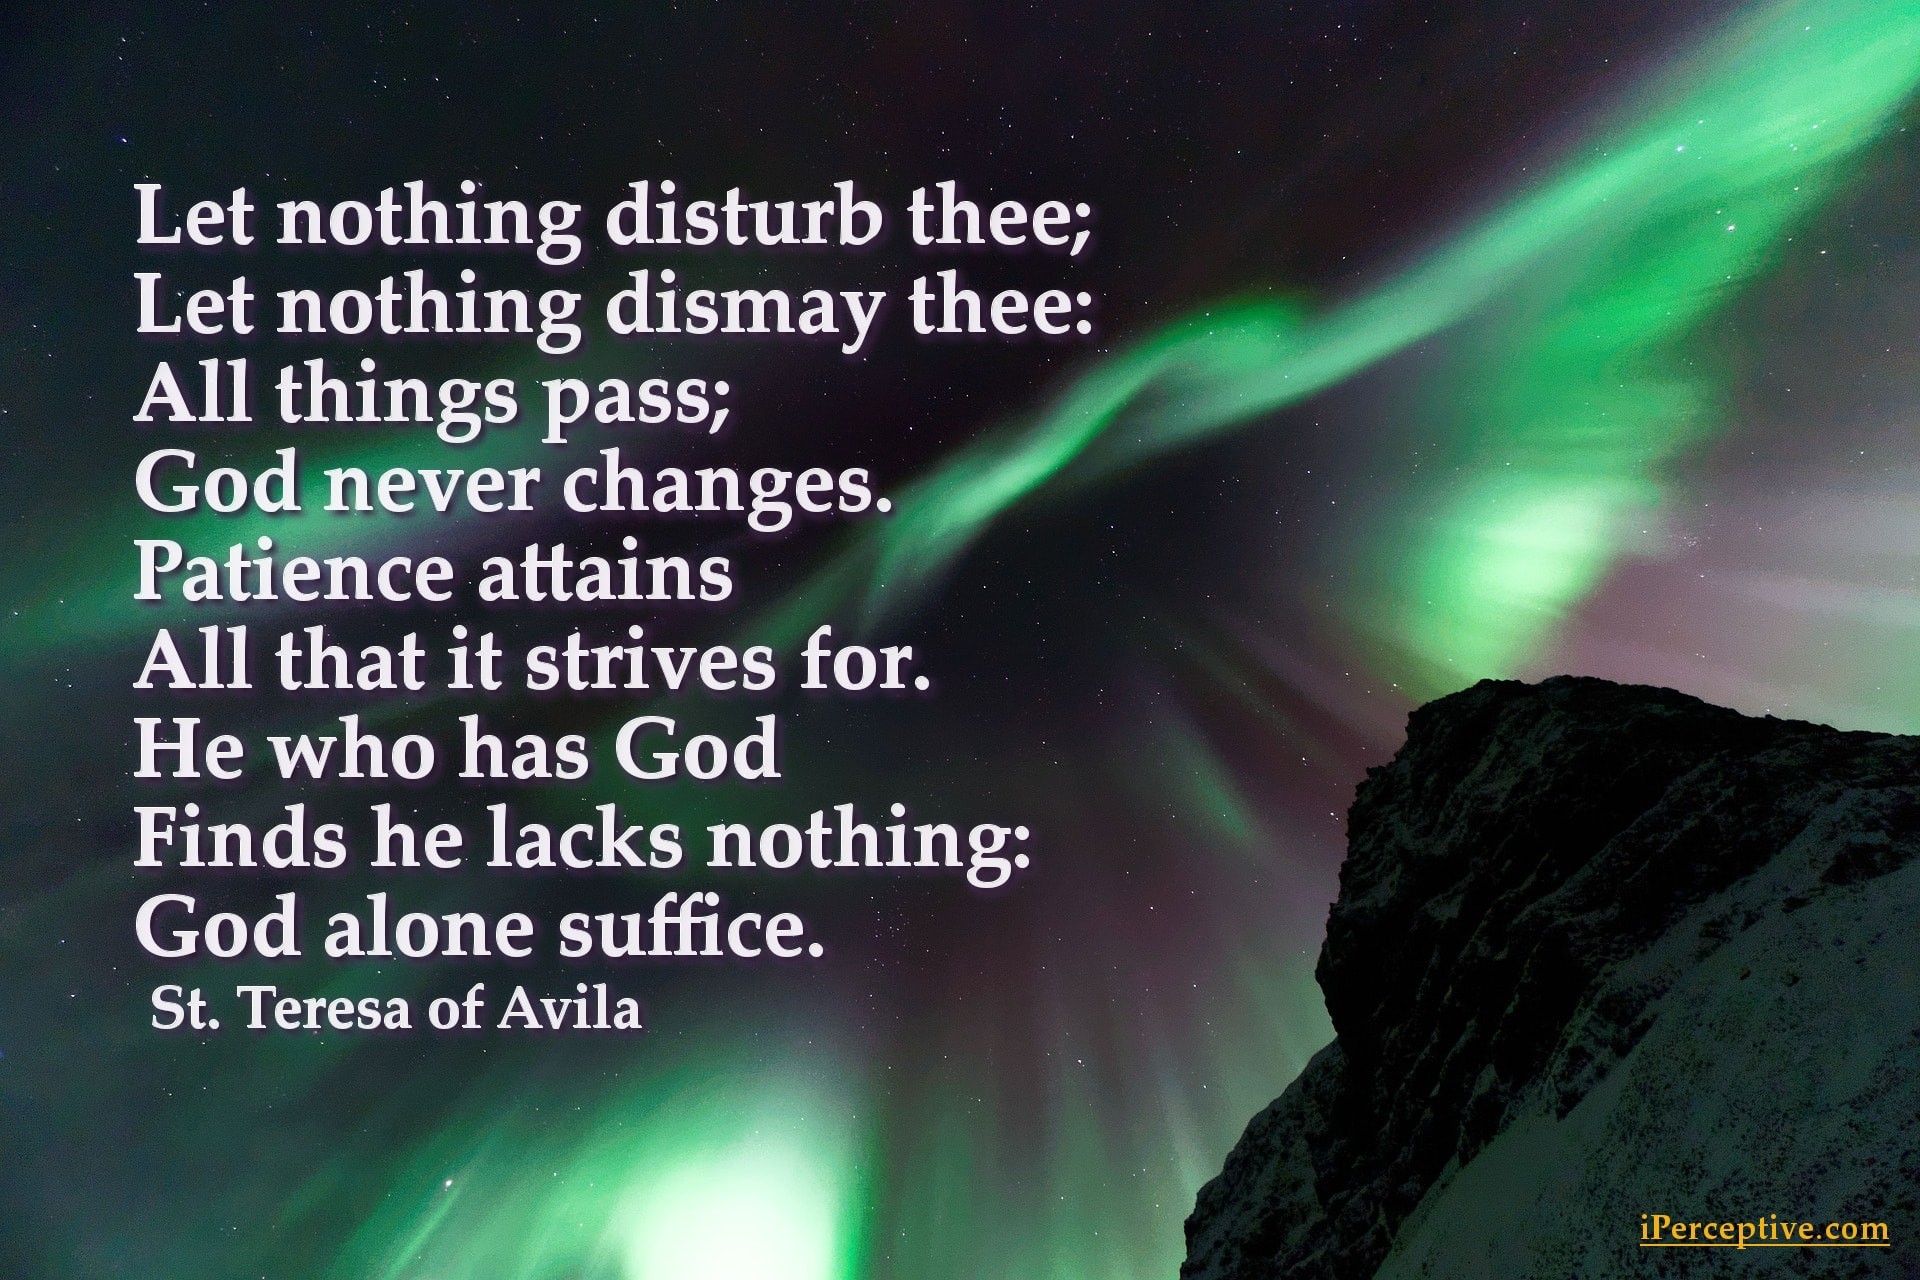 St Teresa of Avila Quote: Let nothing disturb thee, let nothing dismay thee, all things pass...